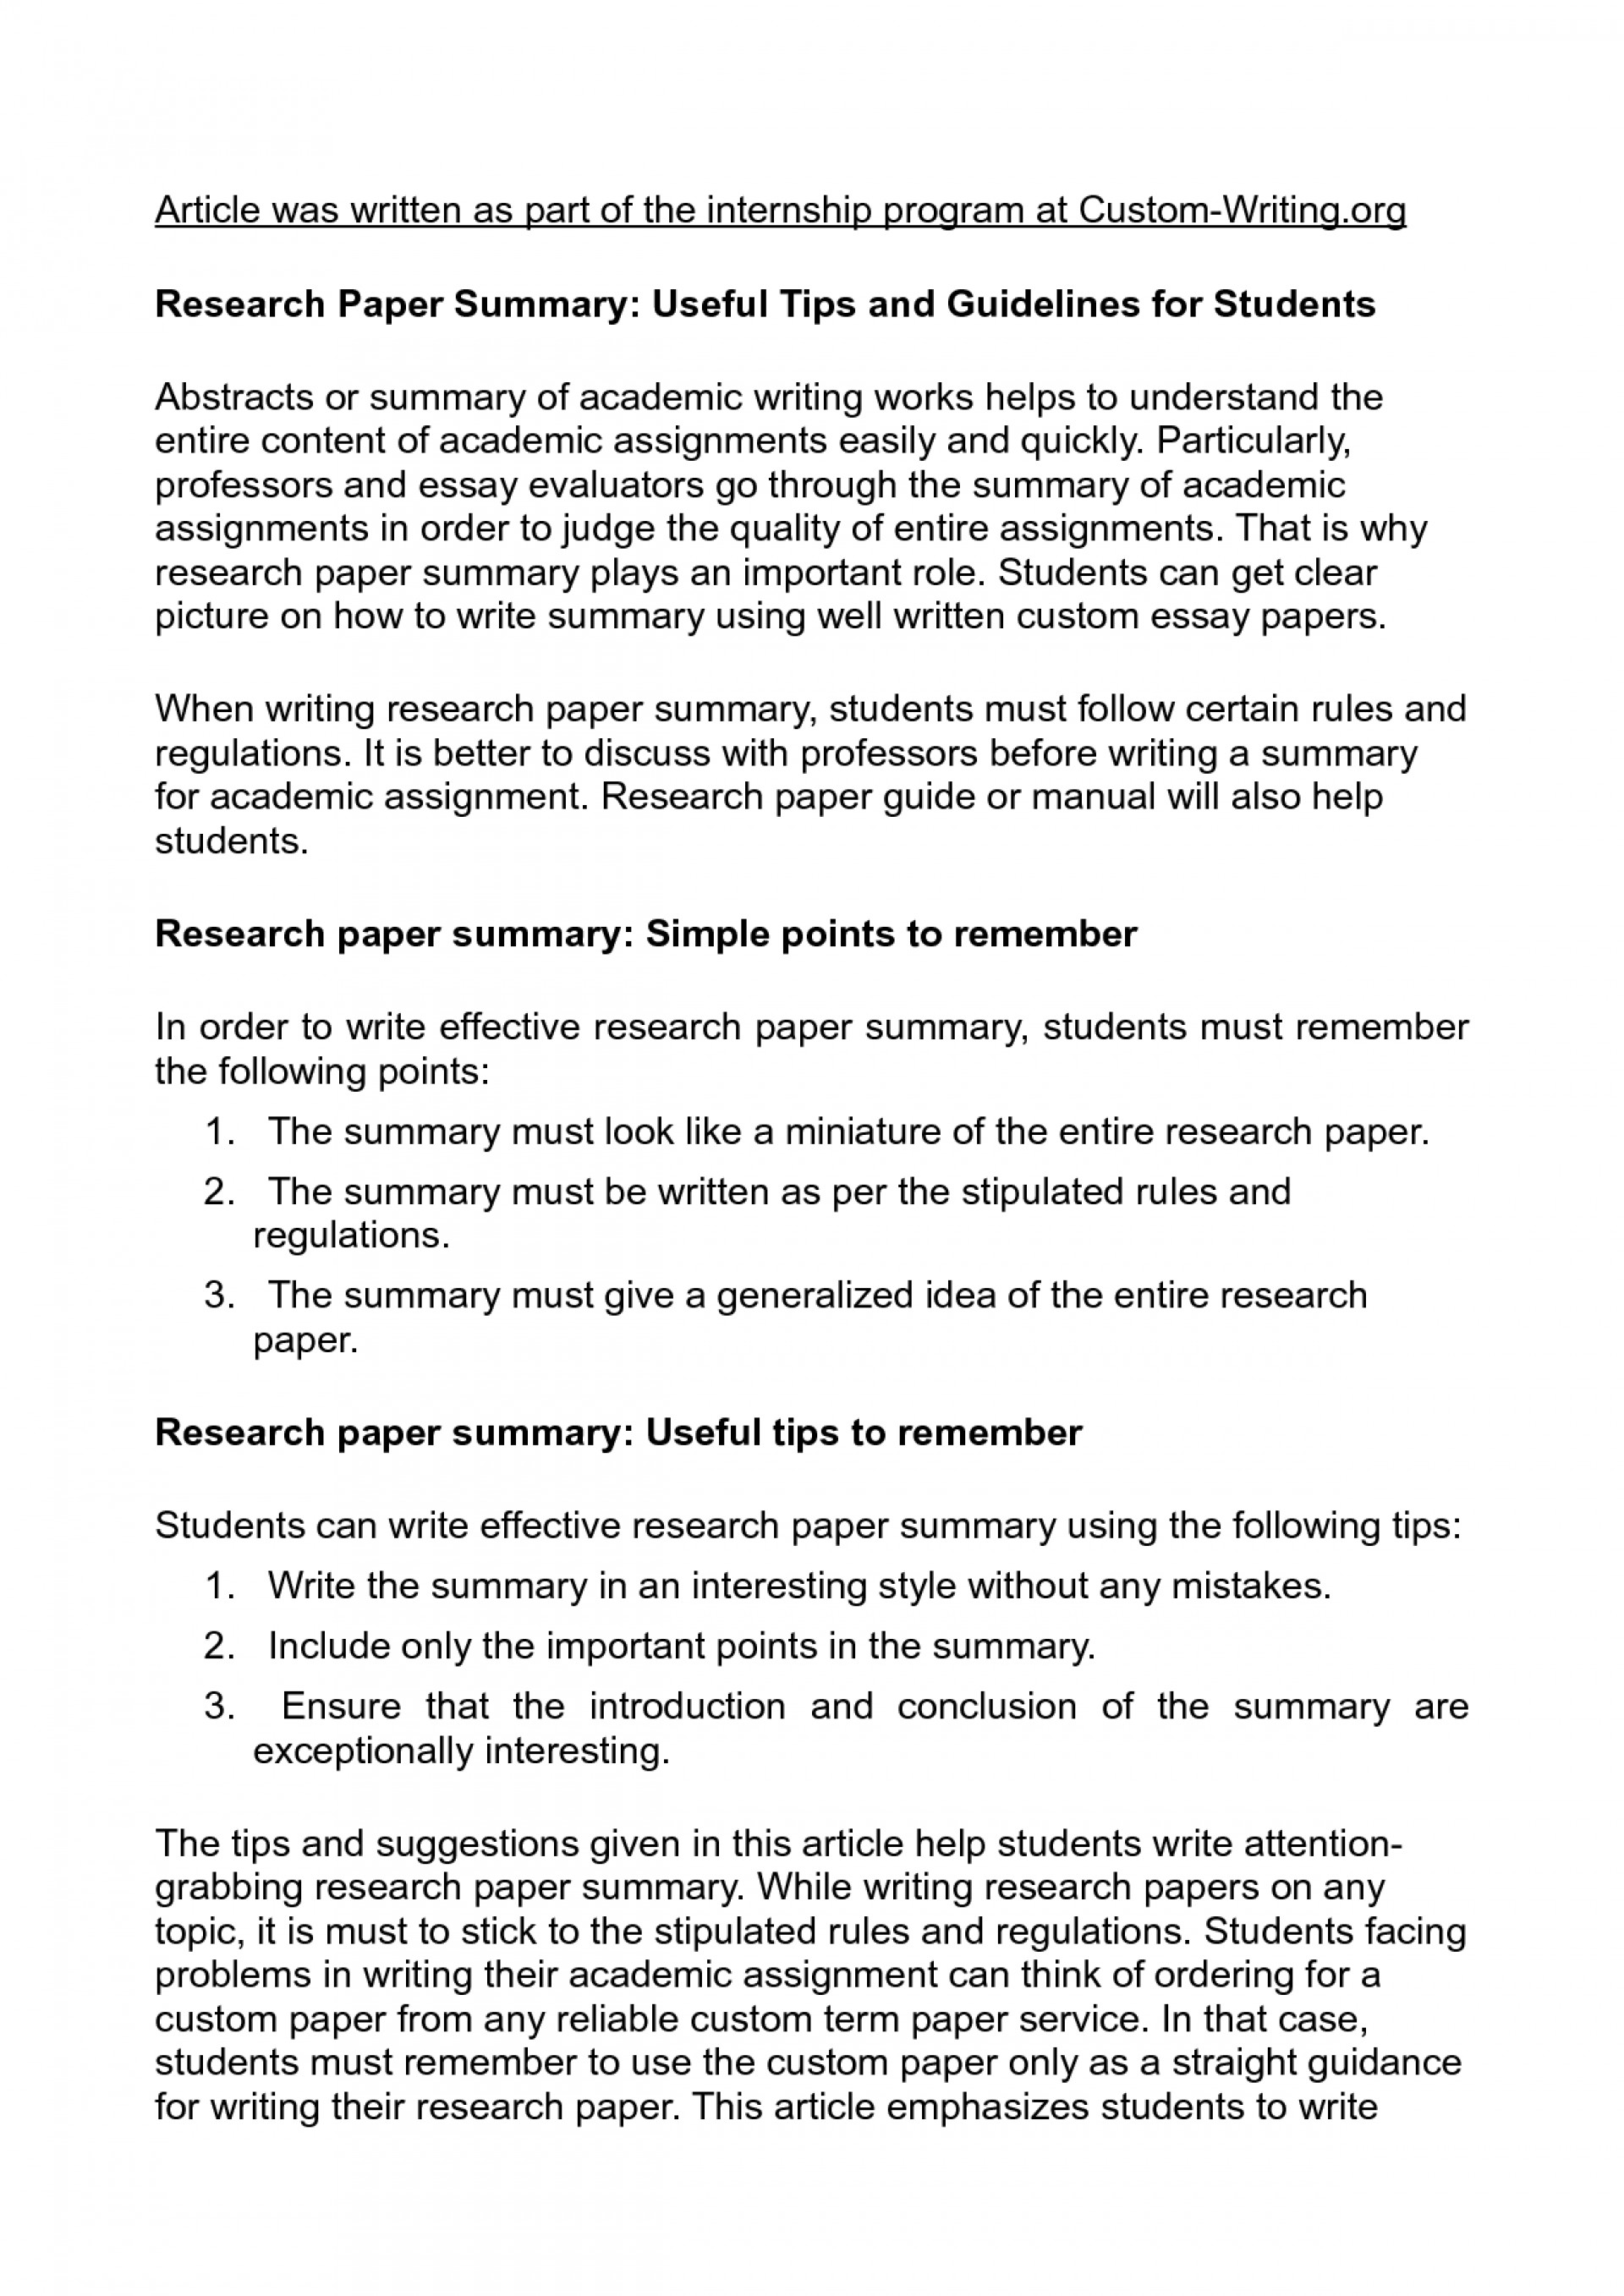 006 Essay Example Adhd Research Papers Brain Scan College About Writing Paper Summary 5 Impressive Conclusion Examples Thesis Statement 1920